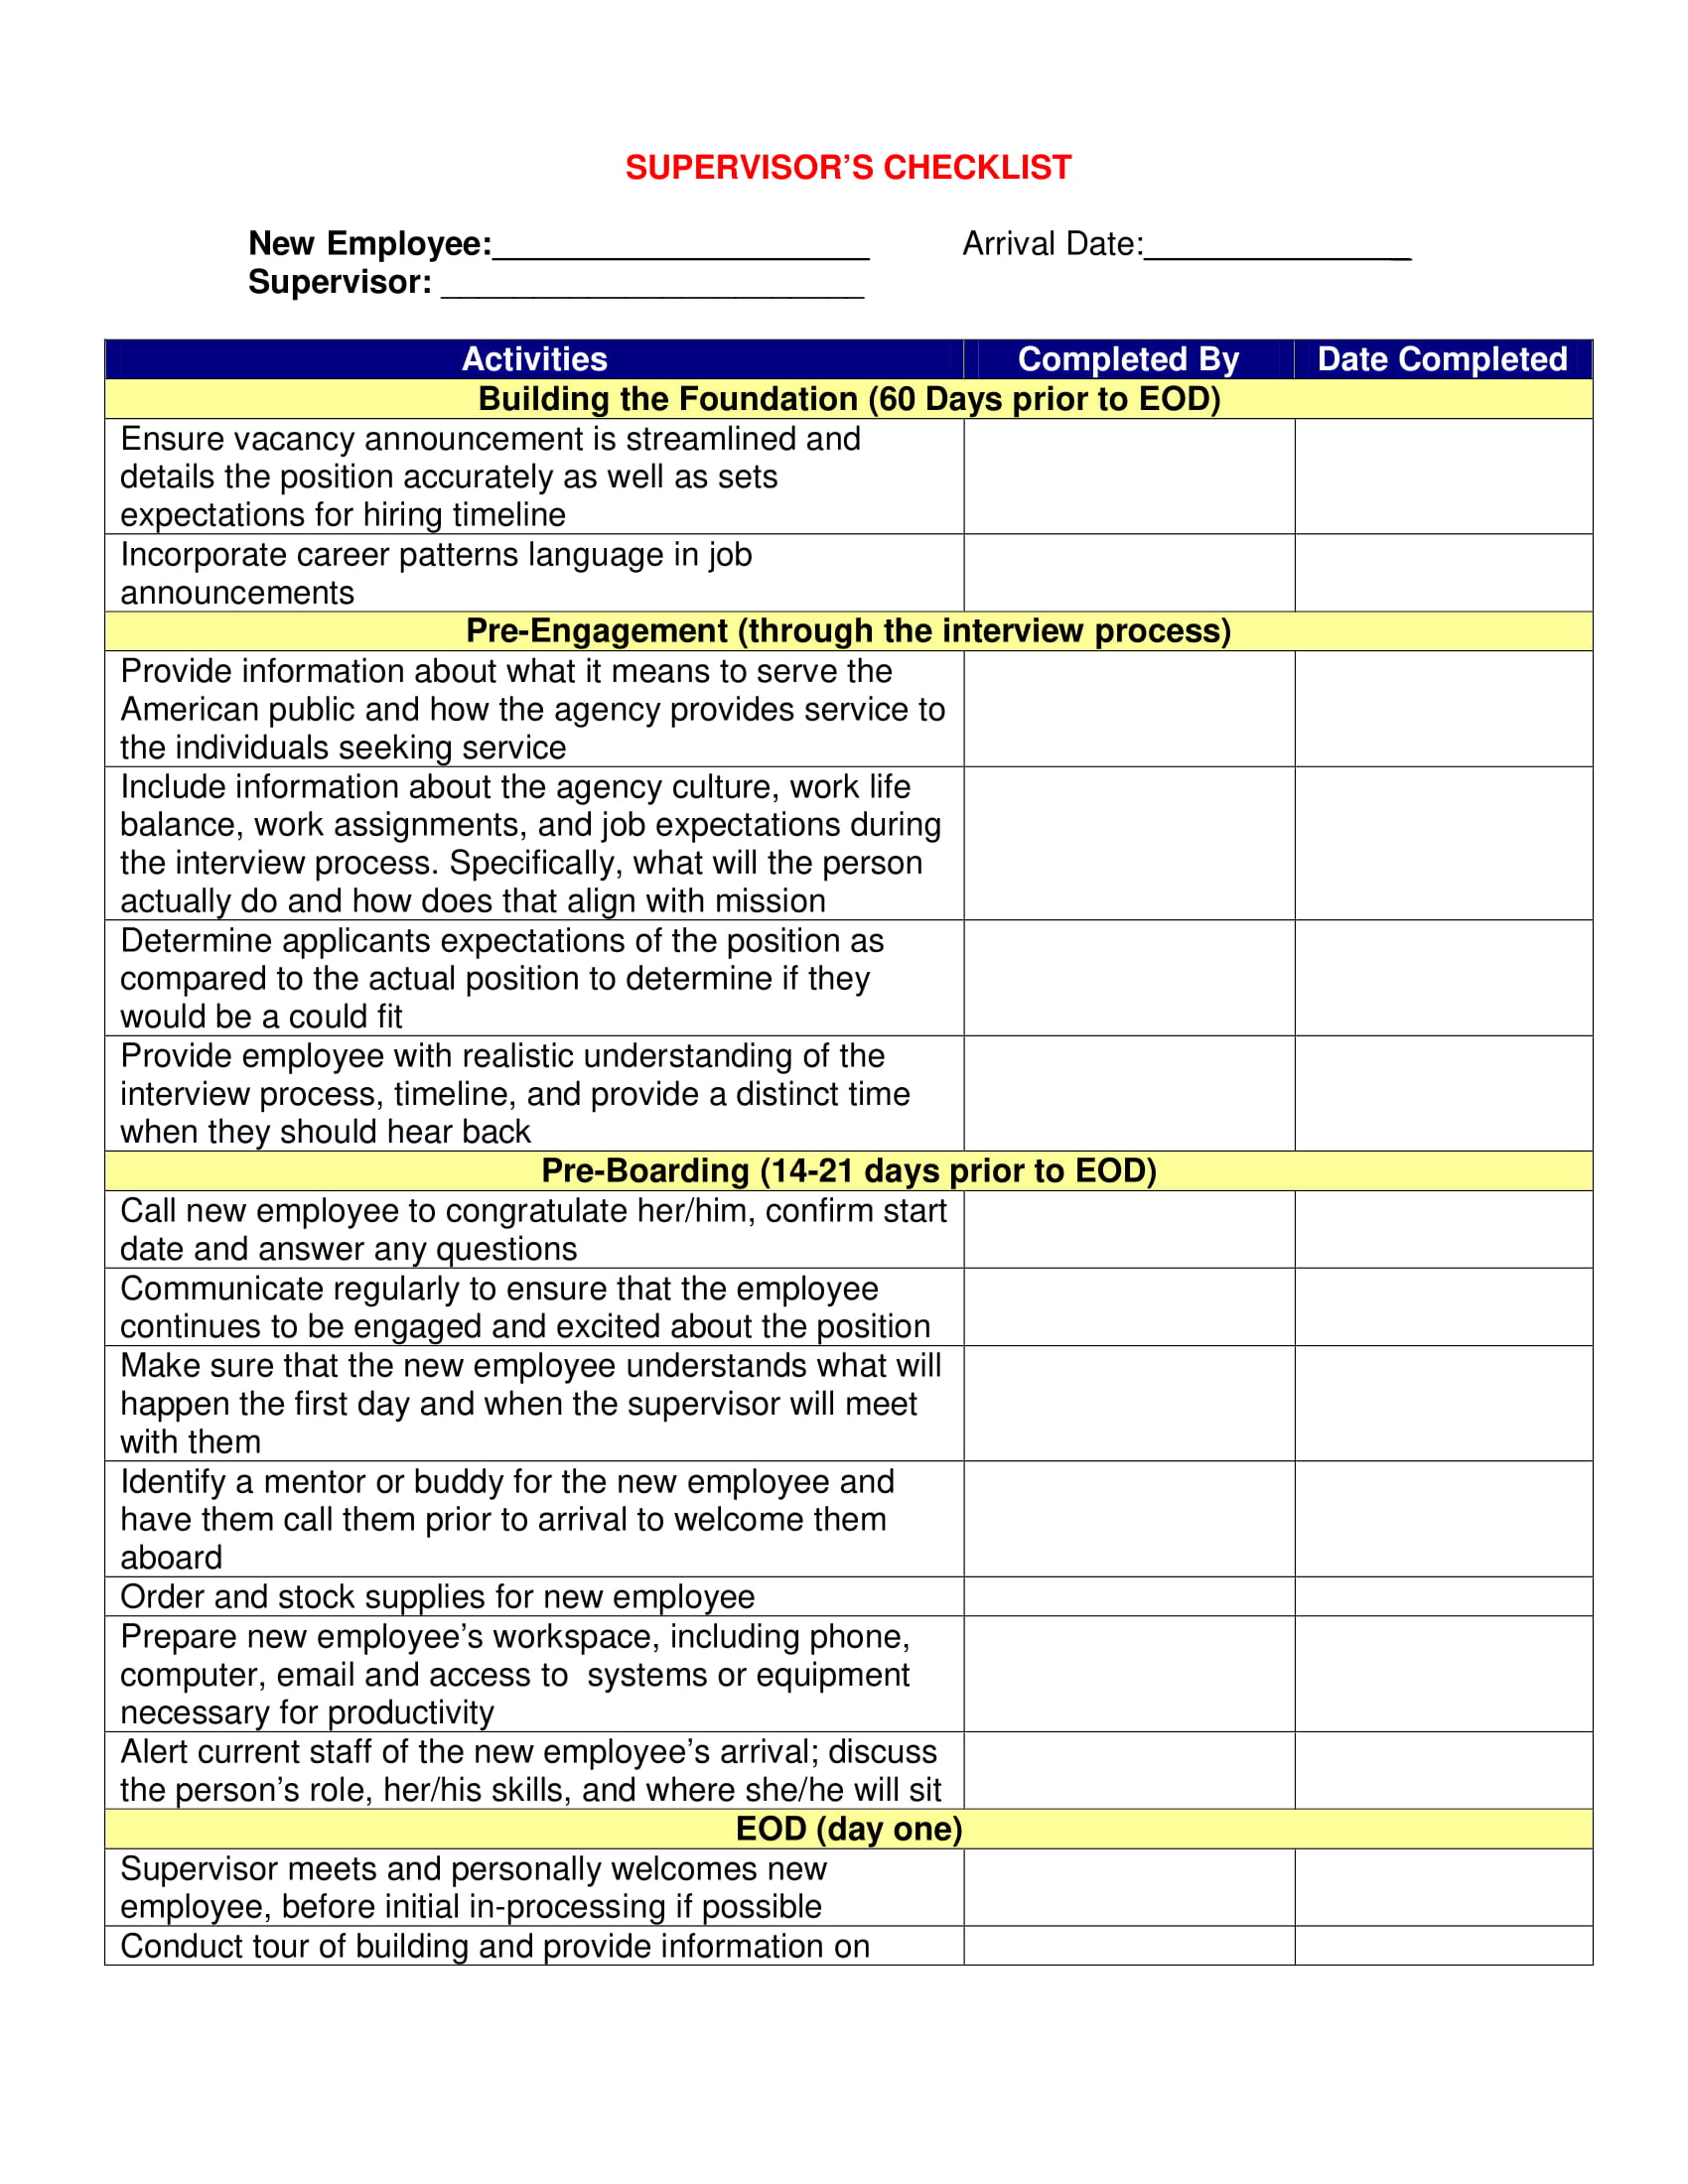 basic supervisors checklist example